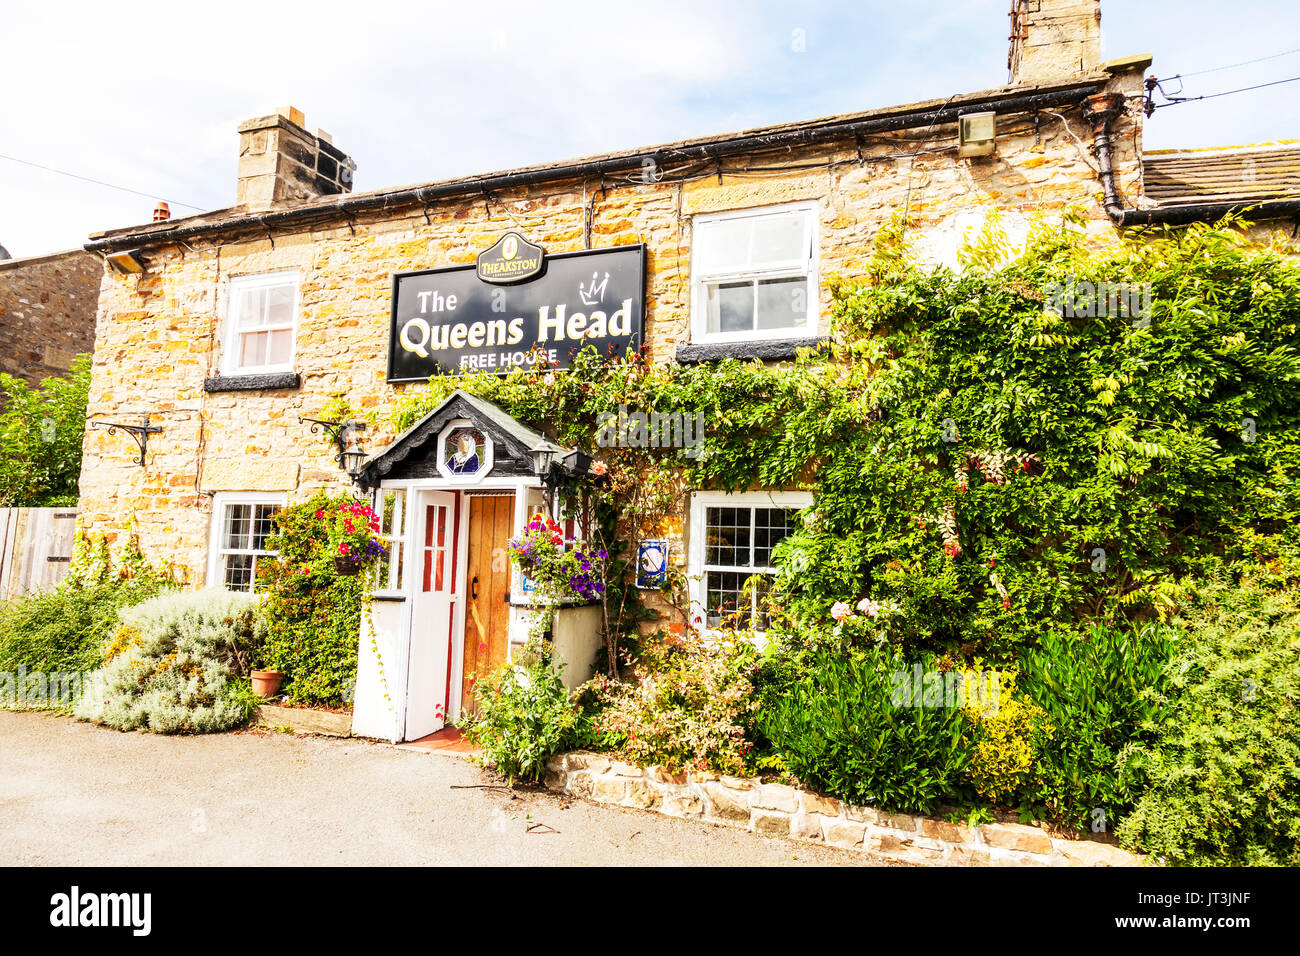 queens head pub Finghall yorkshire, Finghall queens head pub, queens head pub, queens head free house, pub, pubs, bar, bars, free houses, UK, England - Stock Image